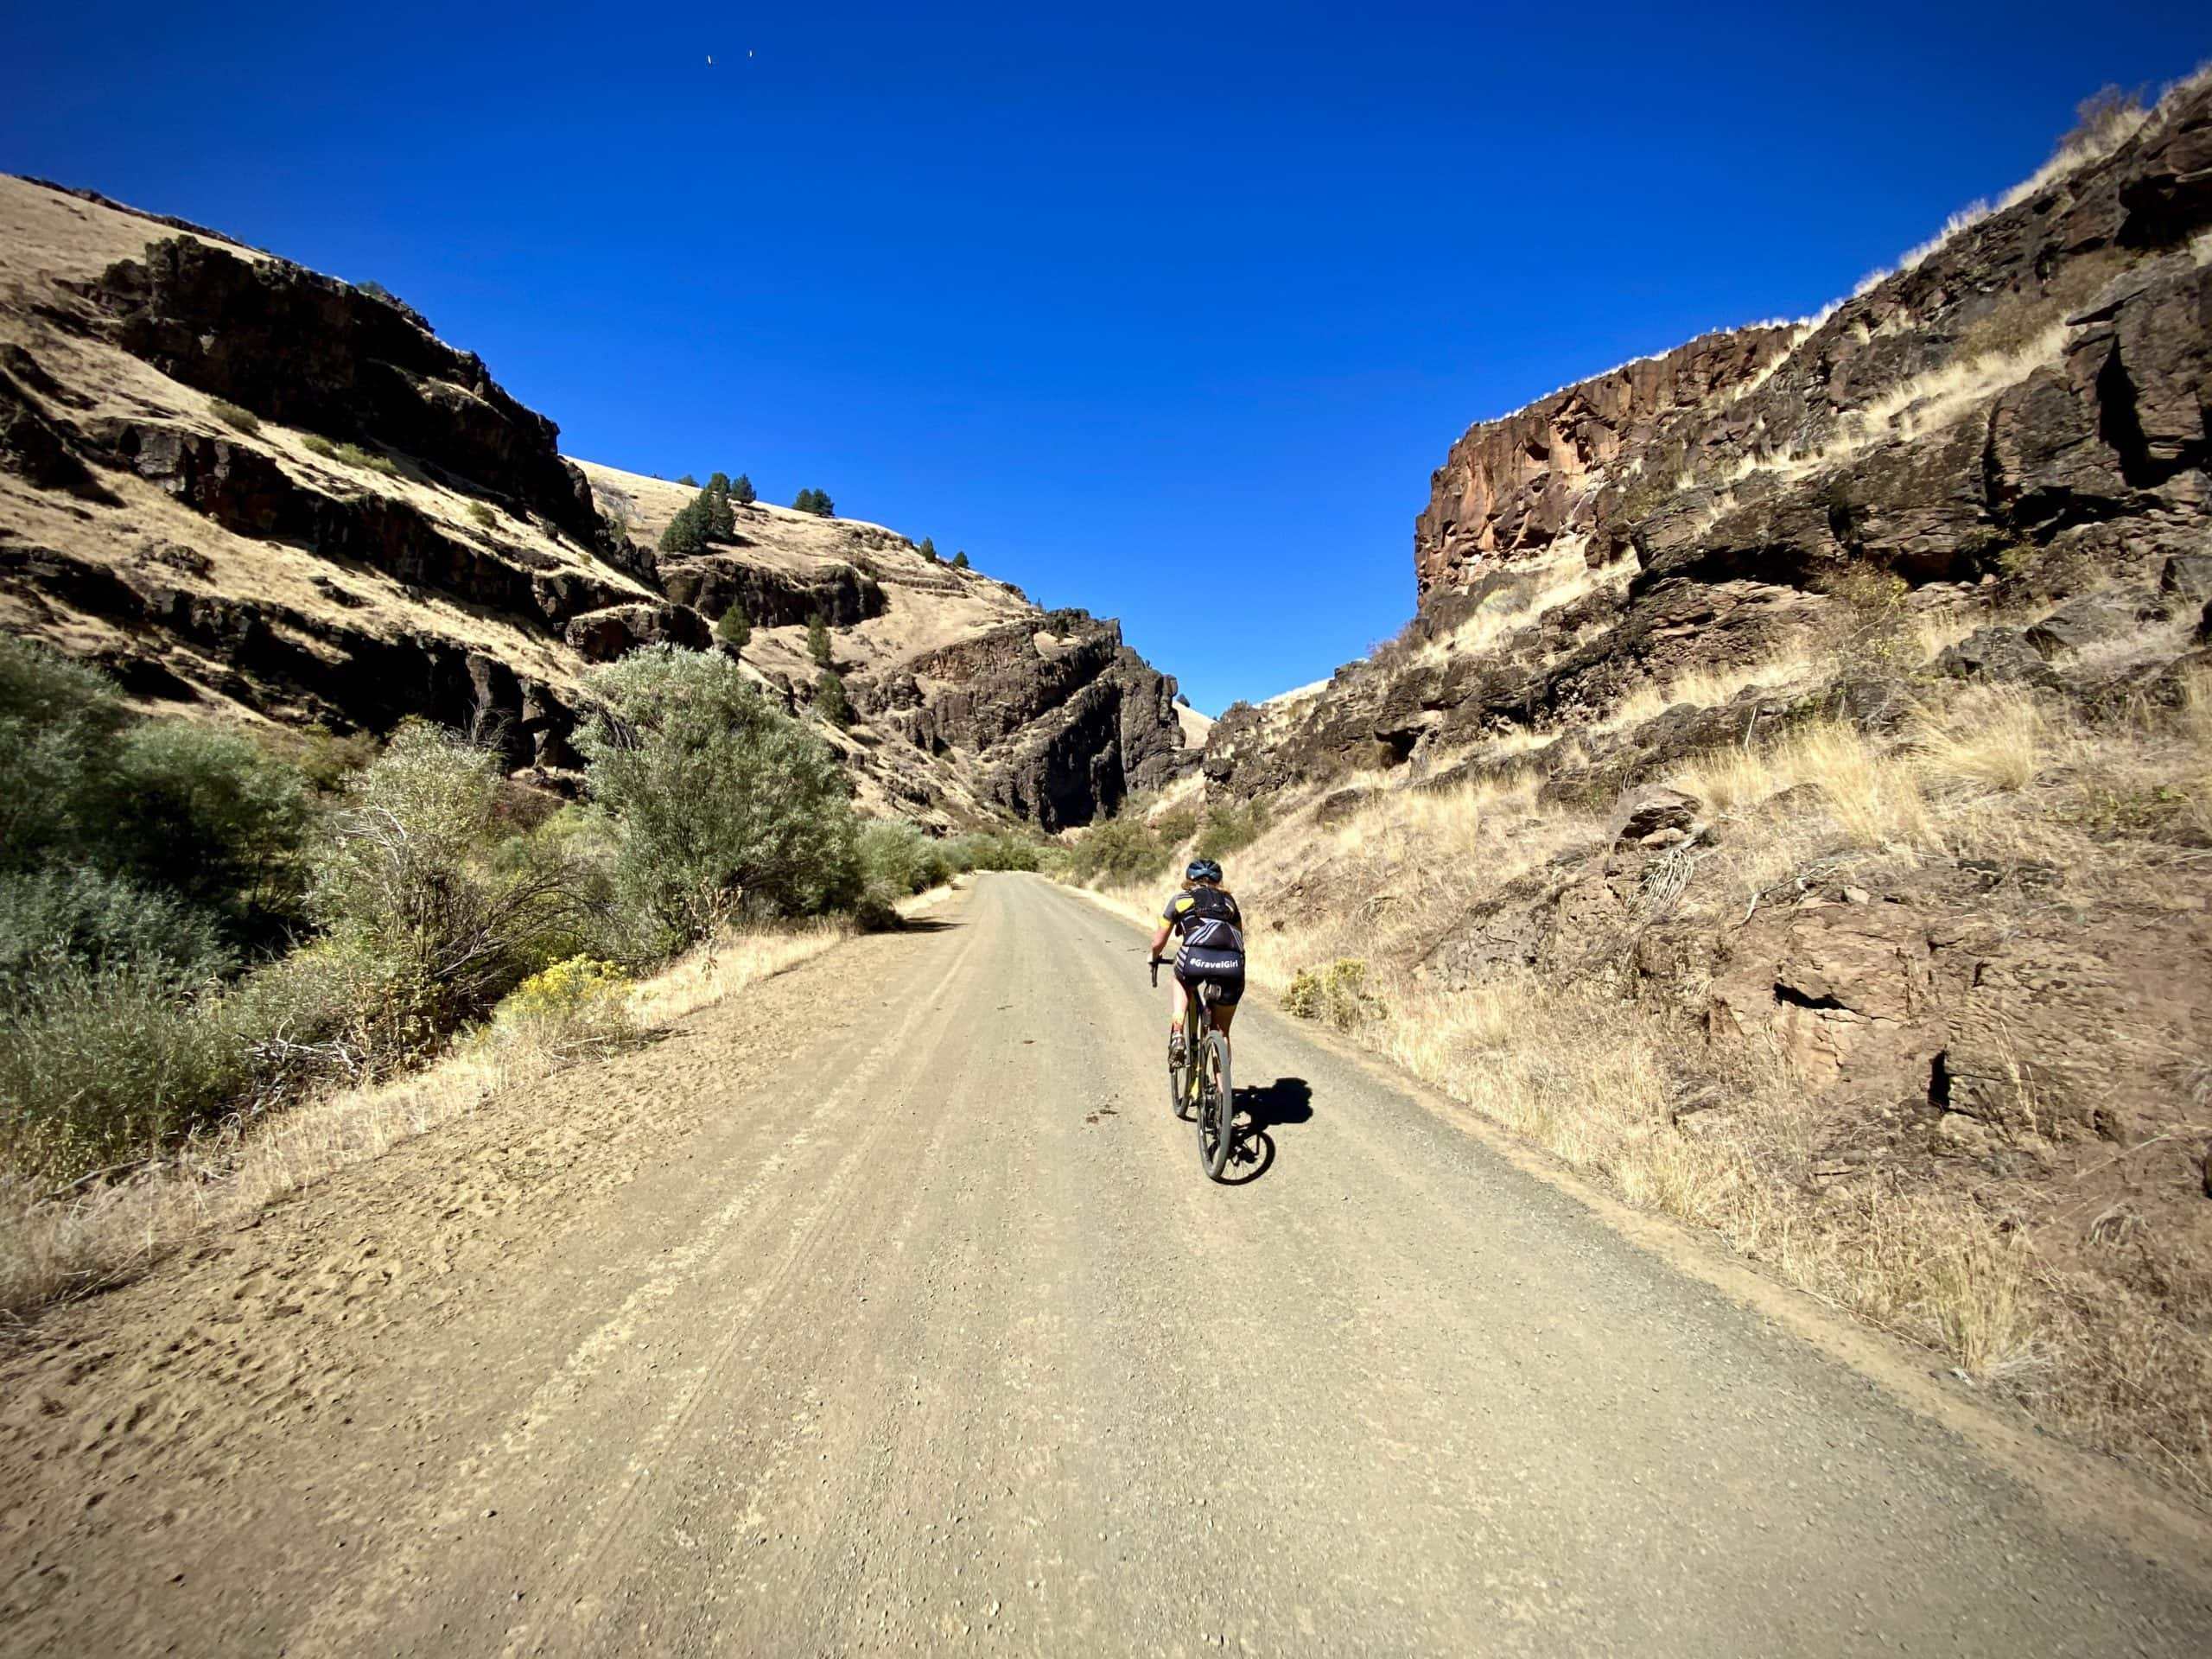 Gravel cyclist entering into the Black Canyon sector along the South Fork of the John Day River.